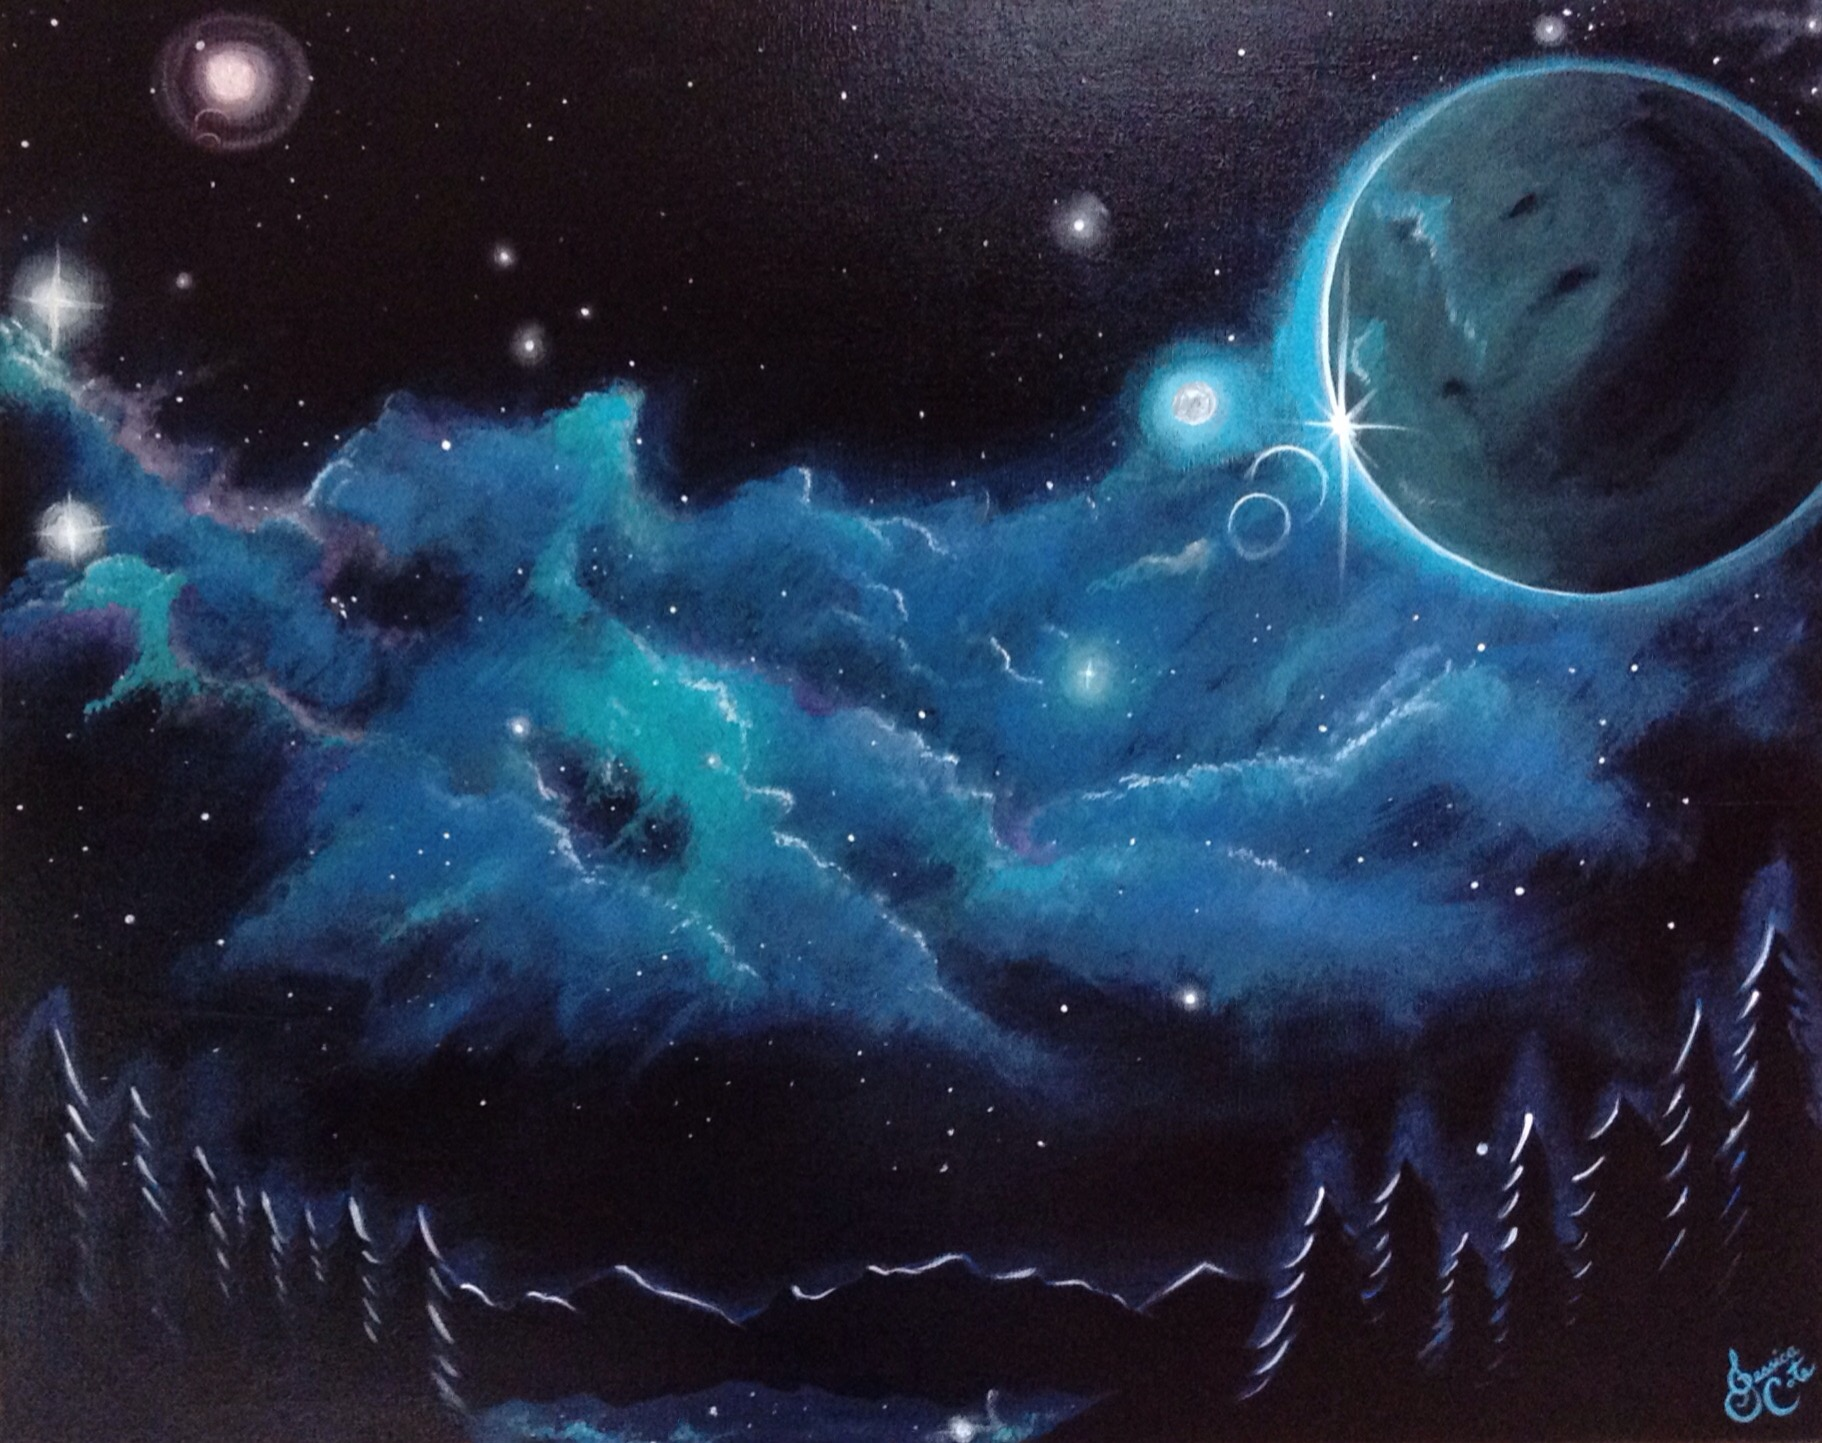 Etherean Serenity artwork by Jessica Cote - art listed for sale on Artplode